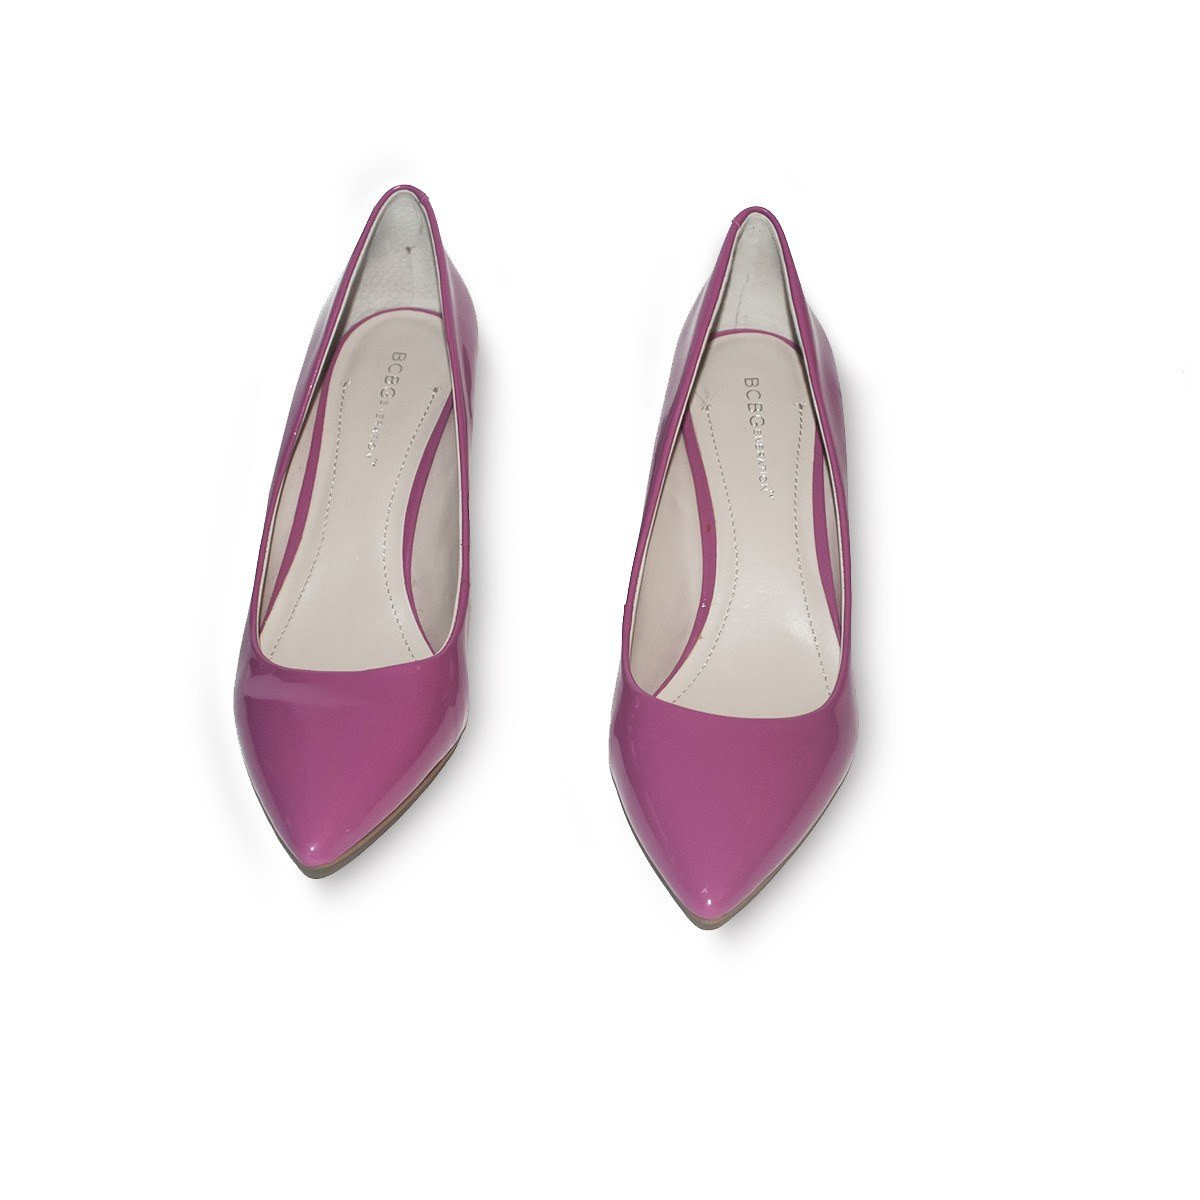 Pink Patent Leather Shoes